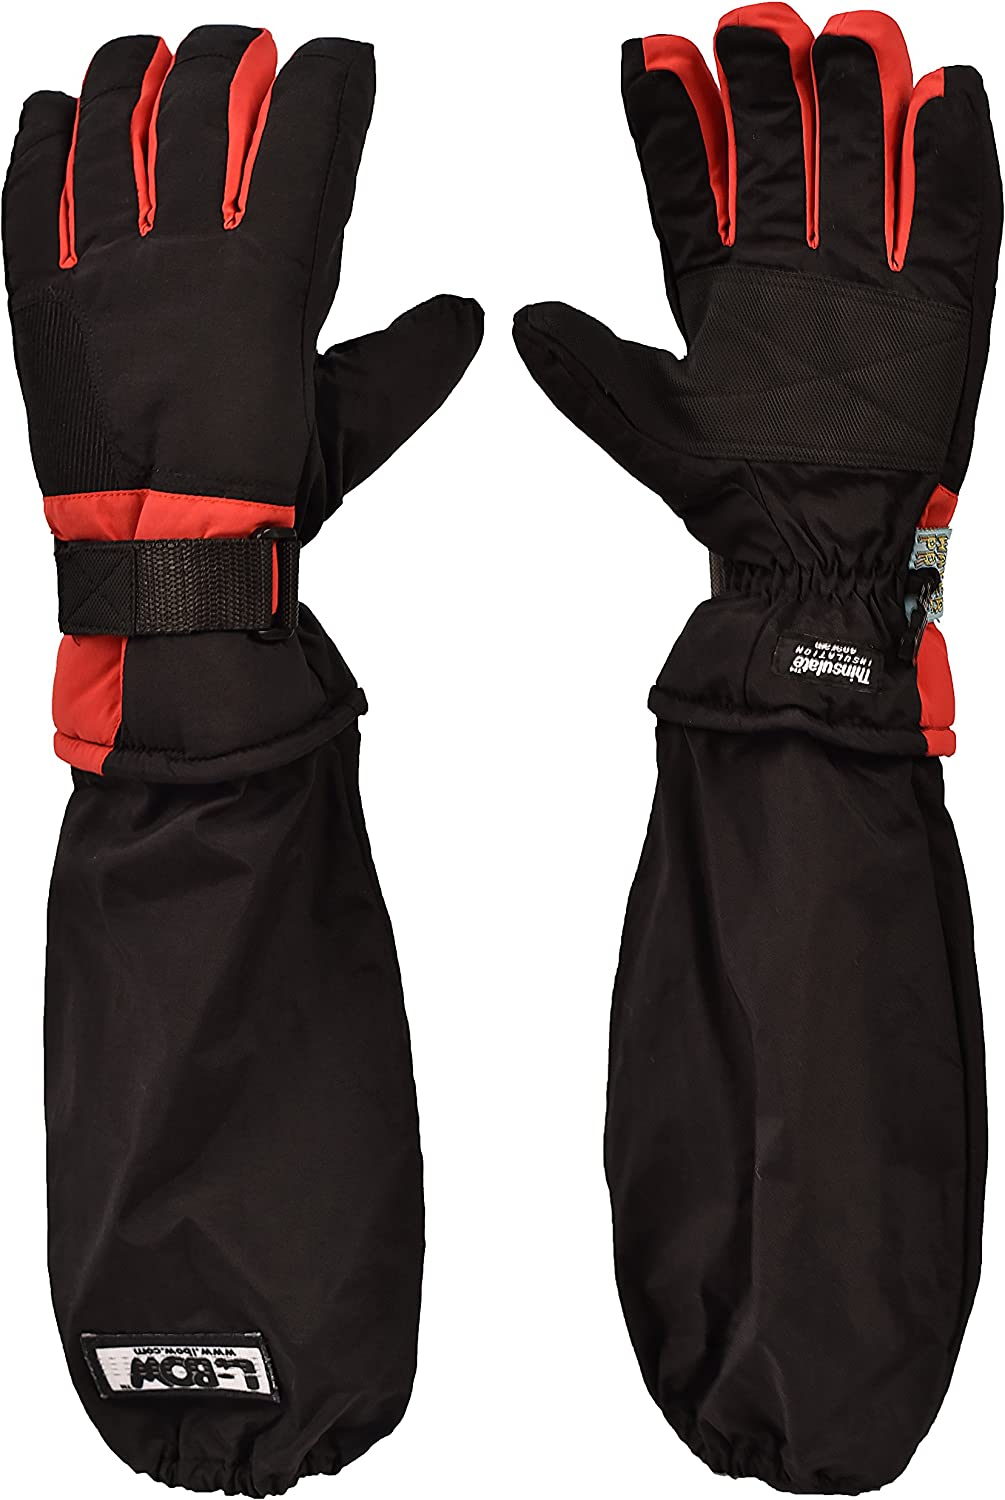 L-Bow Boys Sportster Waterproof 3M Thinsulate Glove Large, Black//Gray